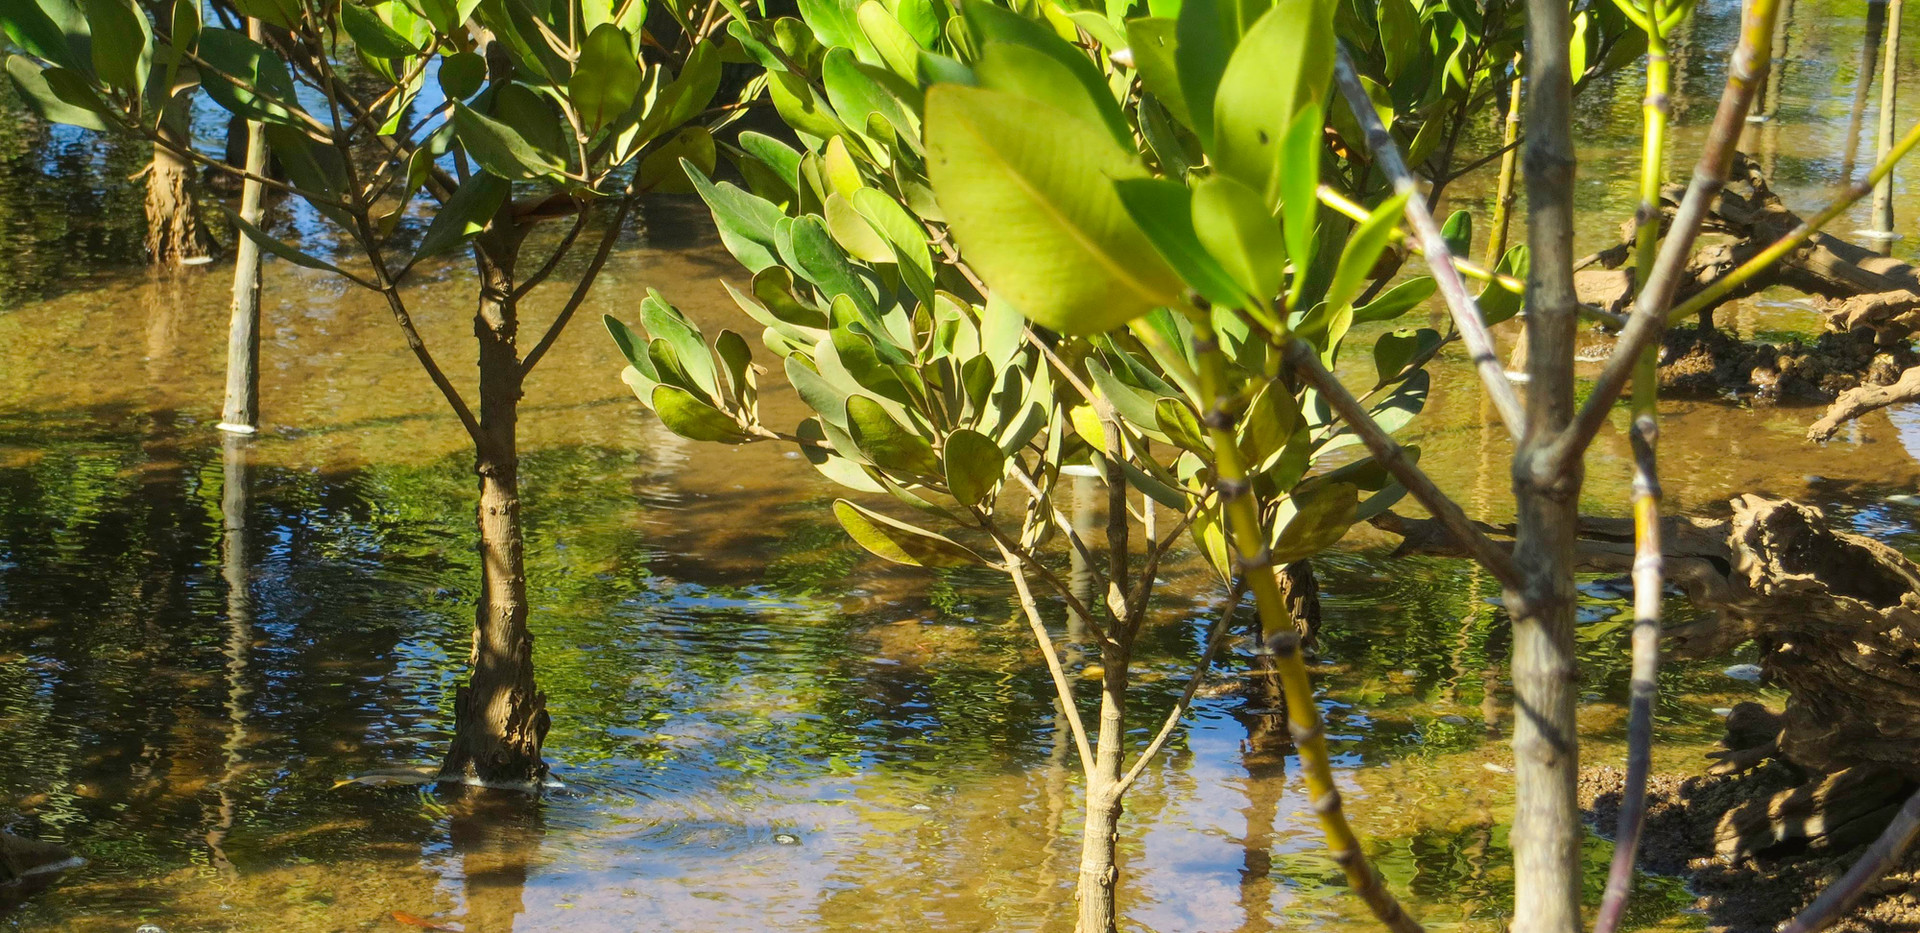 Madagascar_2013_Young mangroves closeup.